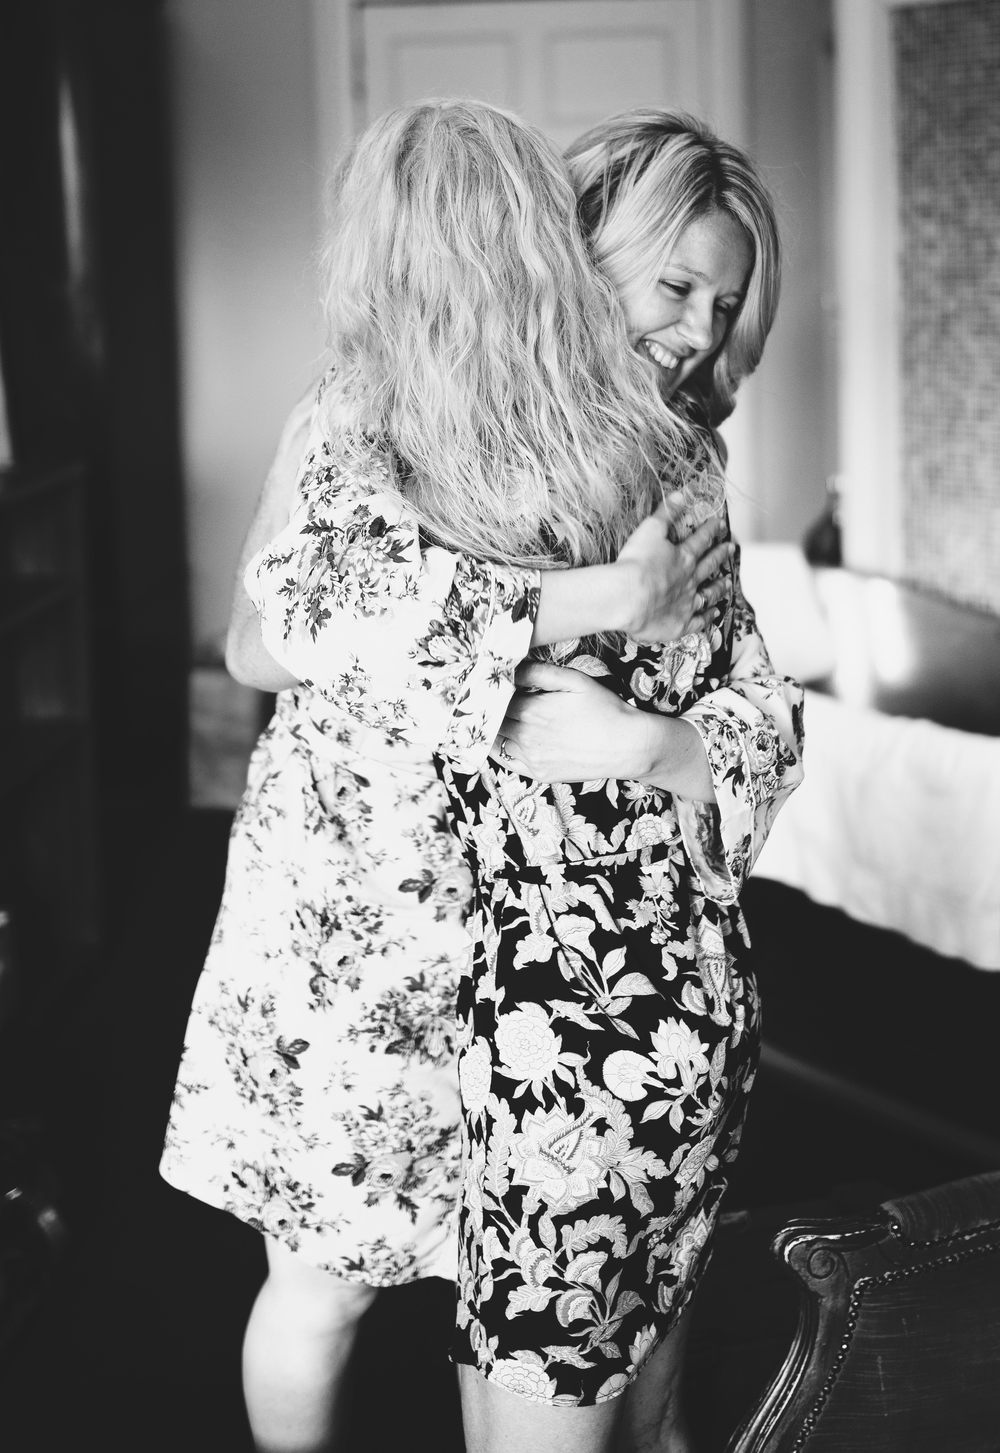 Hugs all round for the York wedding.